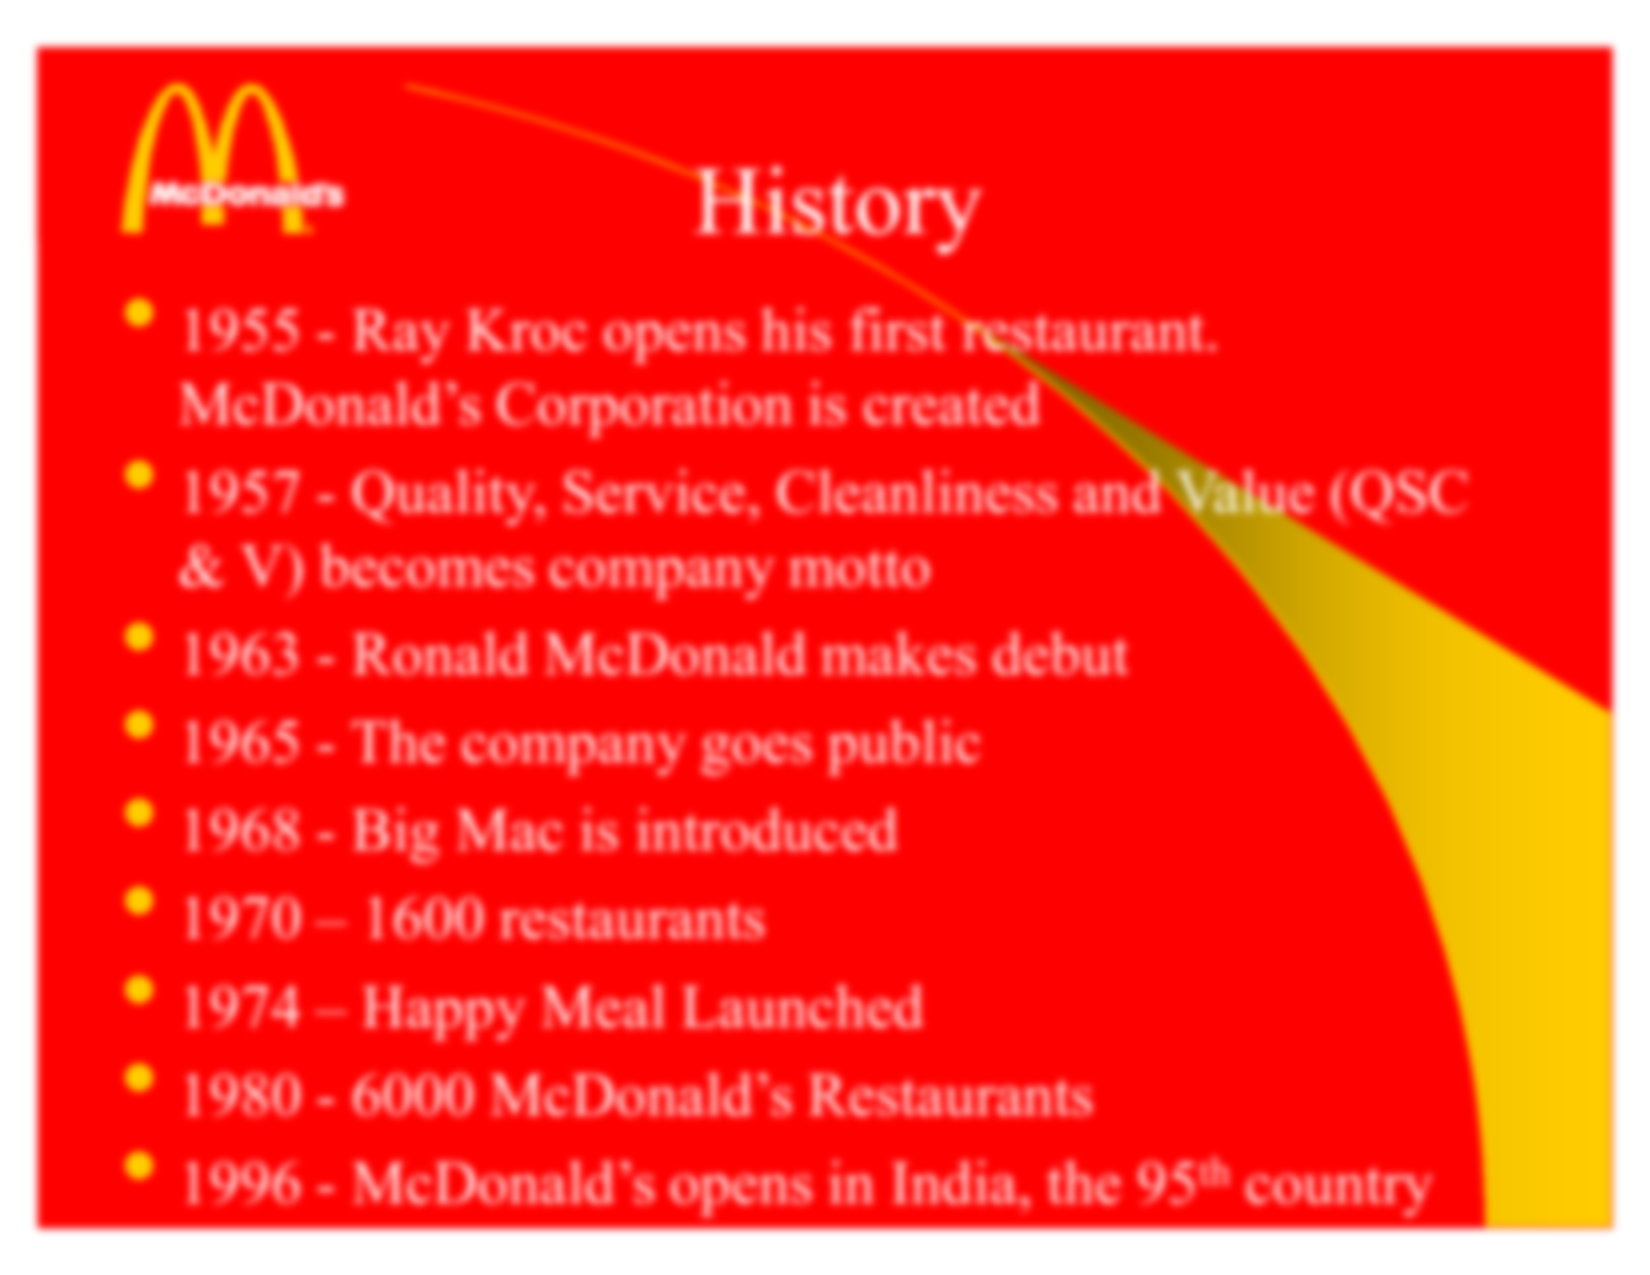 """mcdonalds marketing strategy term papers 4 p marketing strategy: promotion as the core part of the global marketing strategy the propaganda of mcdonald's image as an outstanding example of quality, clear and high customers' value with the help of active advertising company in the mass media and social events has become the distinctive feature of the corporation all over the world: """"one of the methods employed is advertising."""